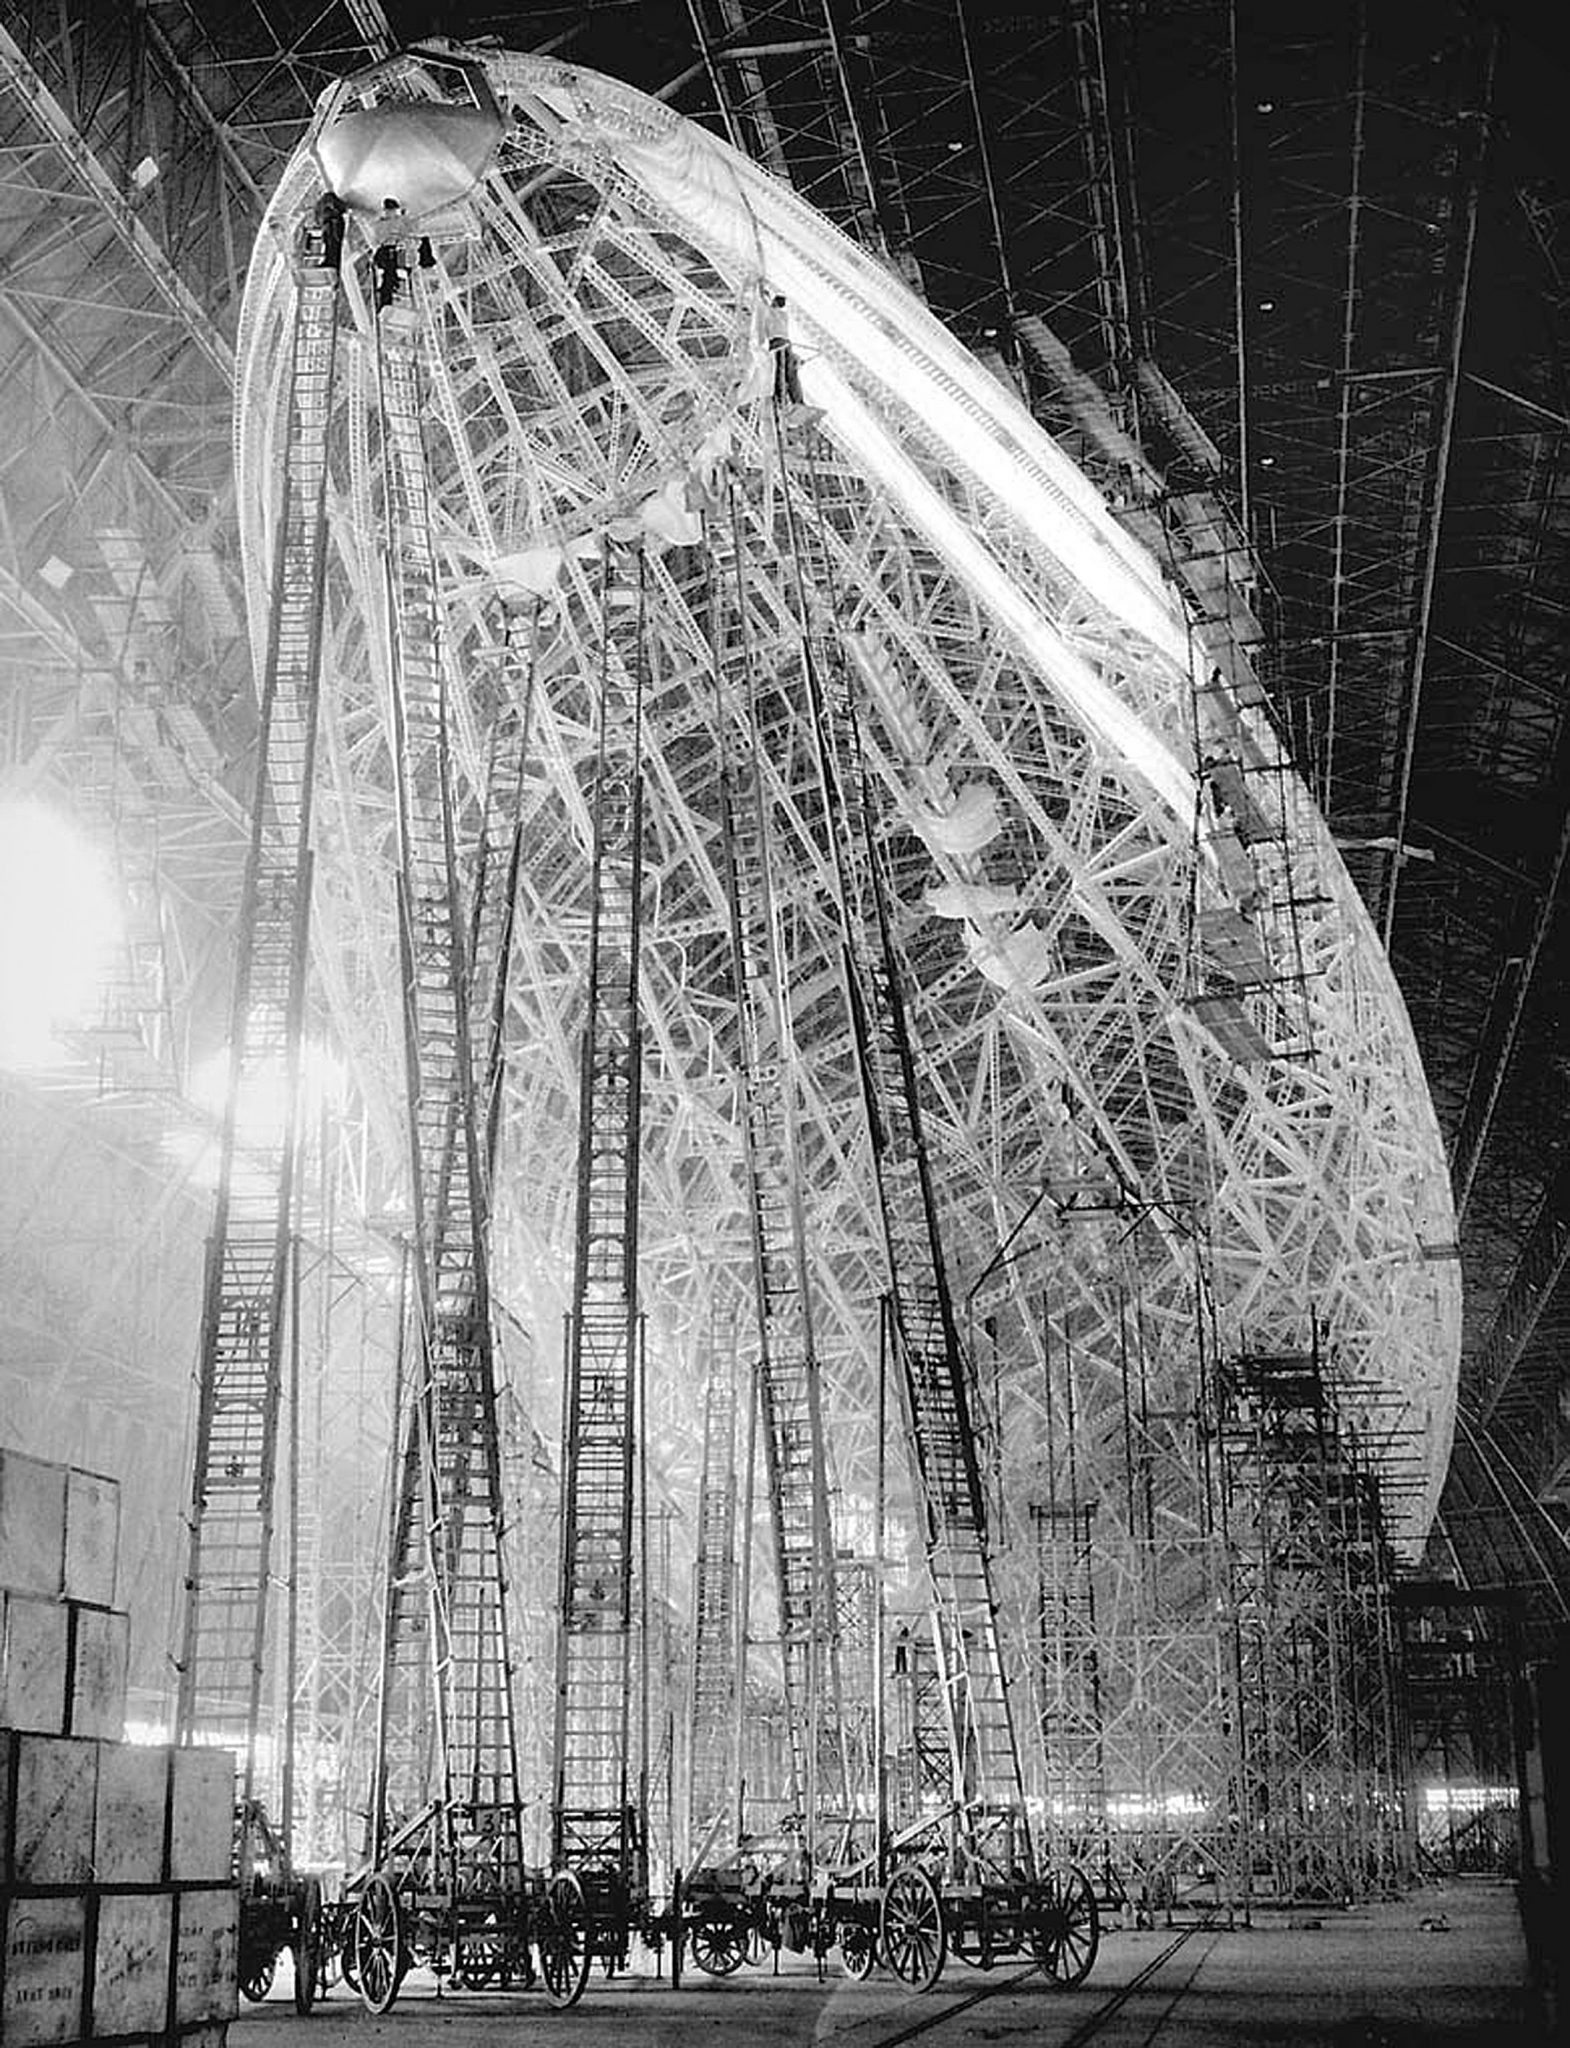 The USS Akron The USS Akron